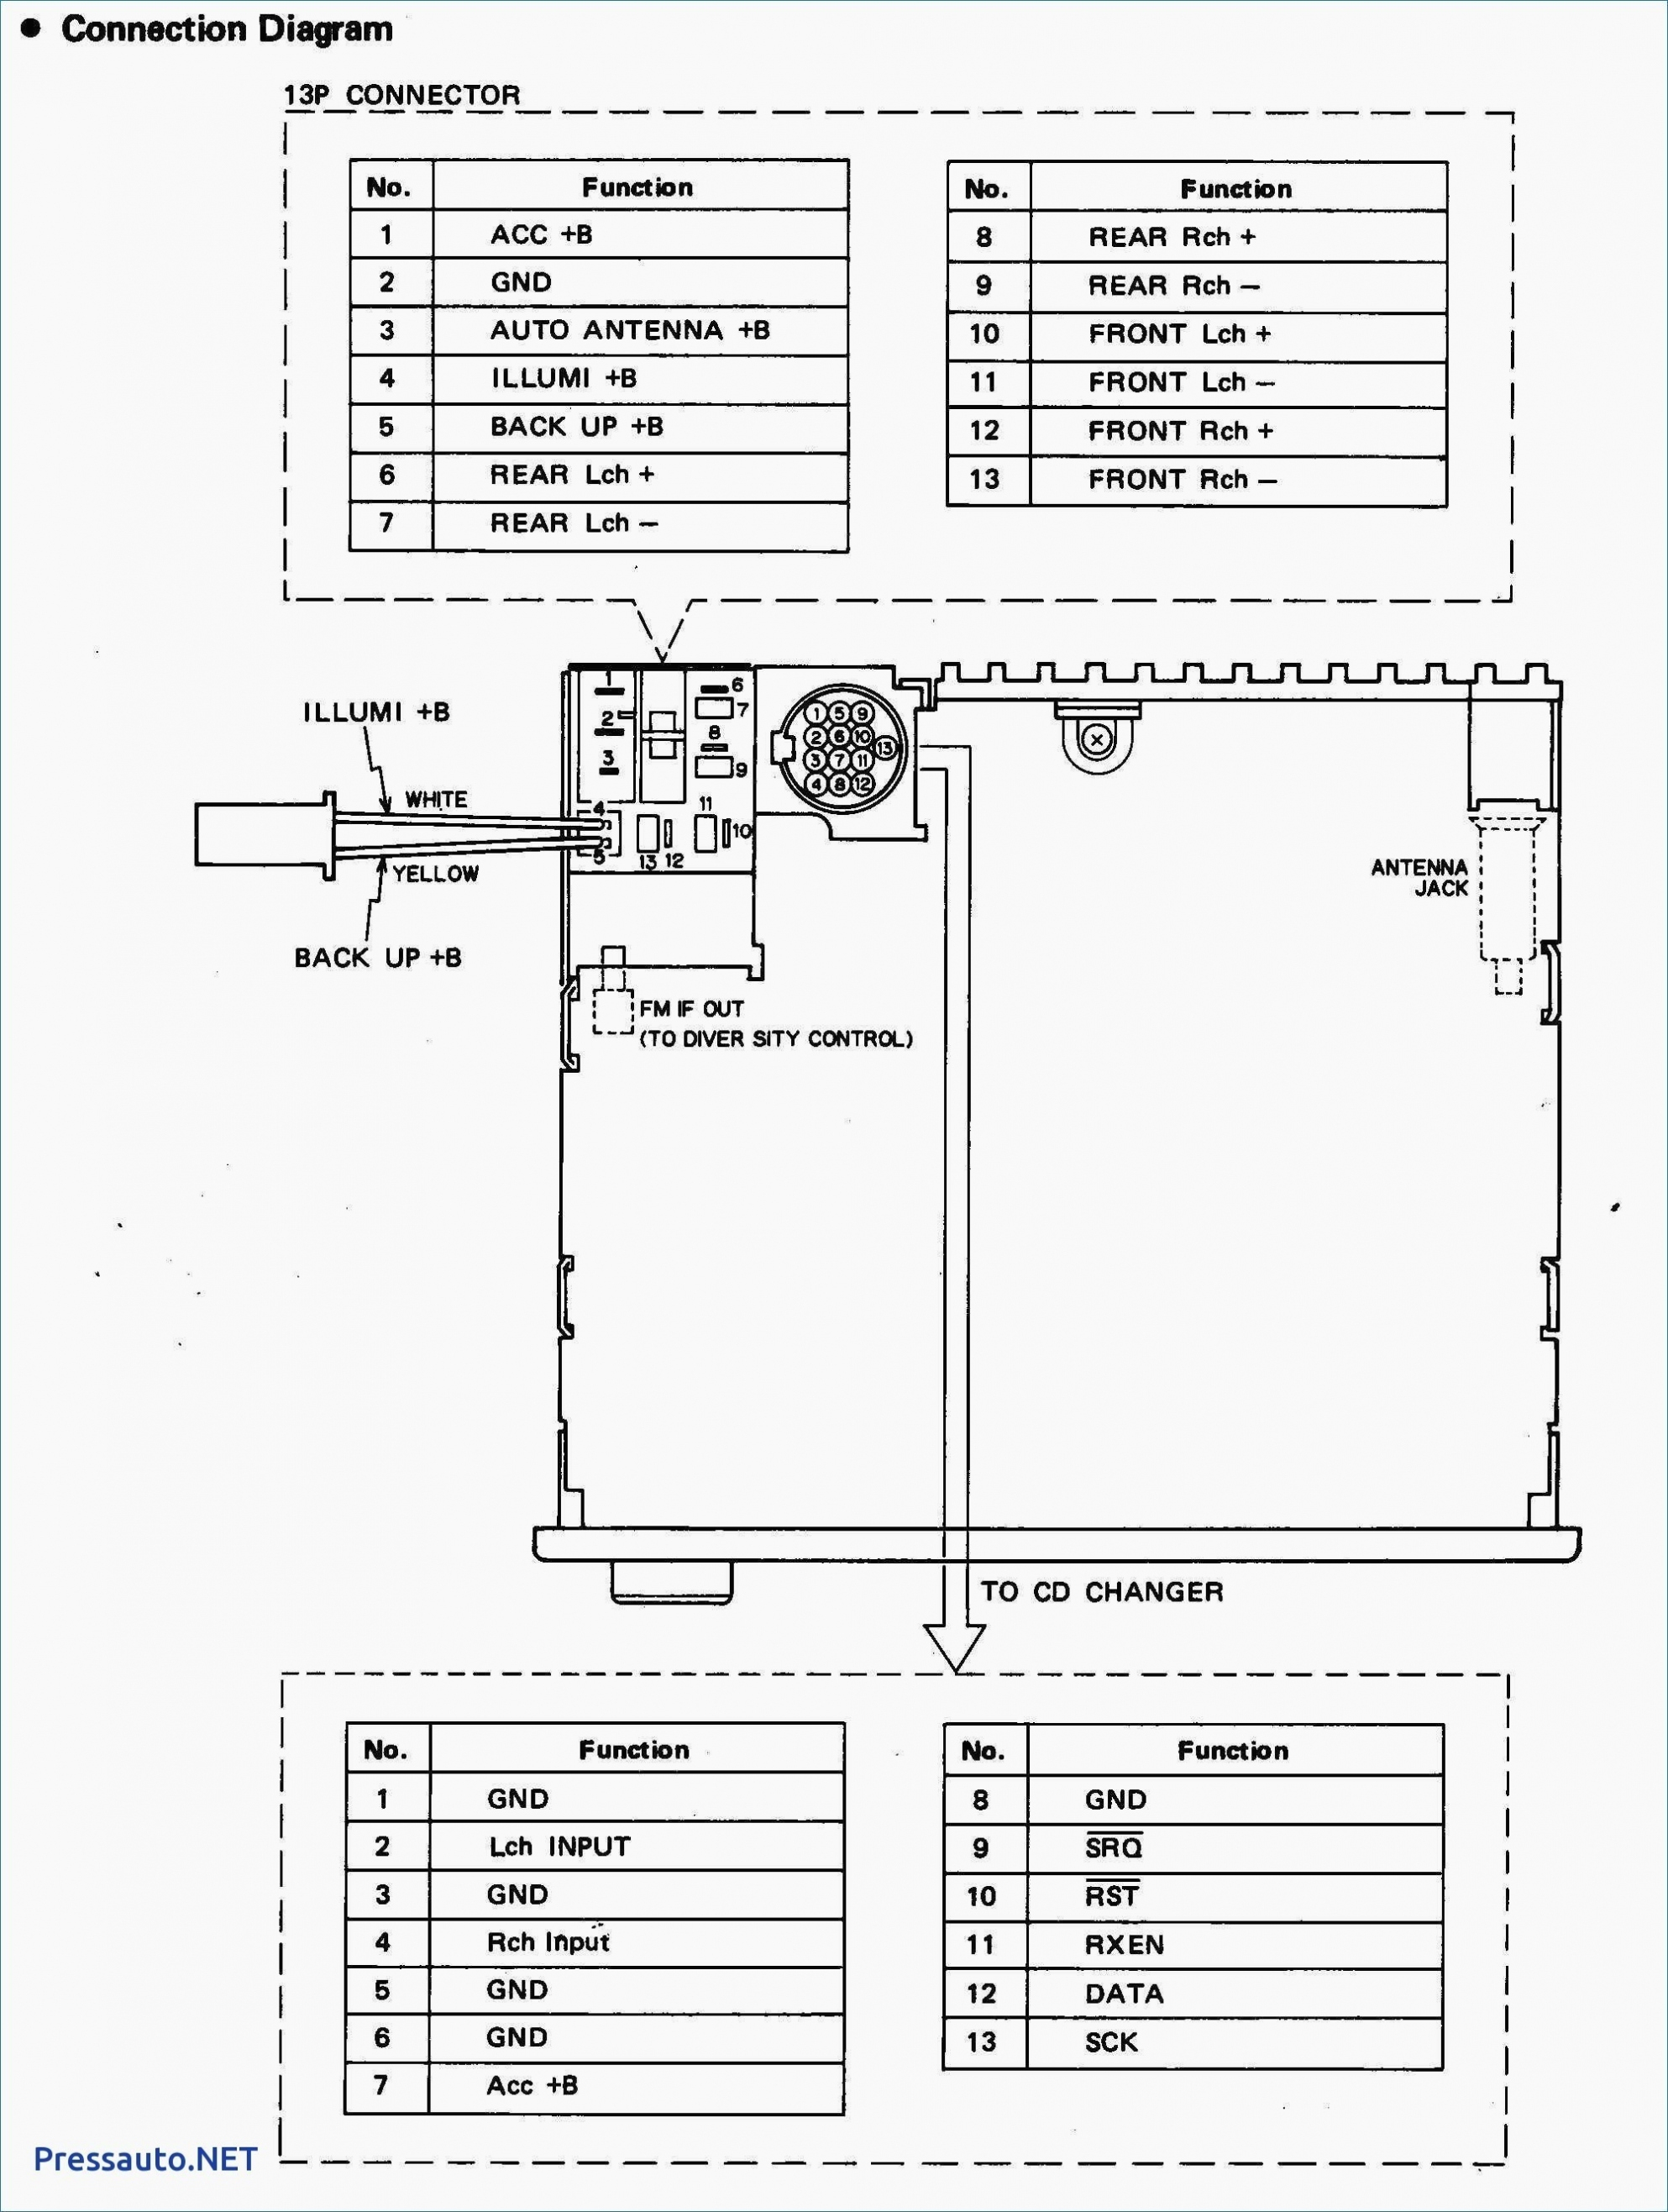 Wiring Diagram For Pioneer Best Pioneer Deh X1810Ub Wiring Diagram - Pioneer Deh-X1810Ub Wiring Diagram